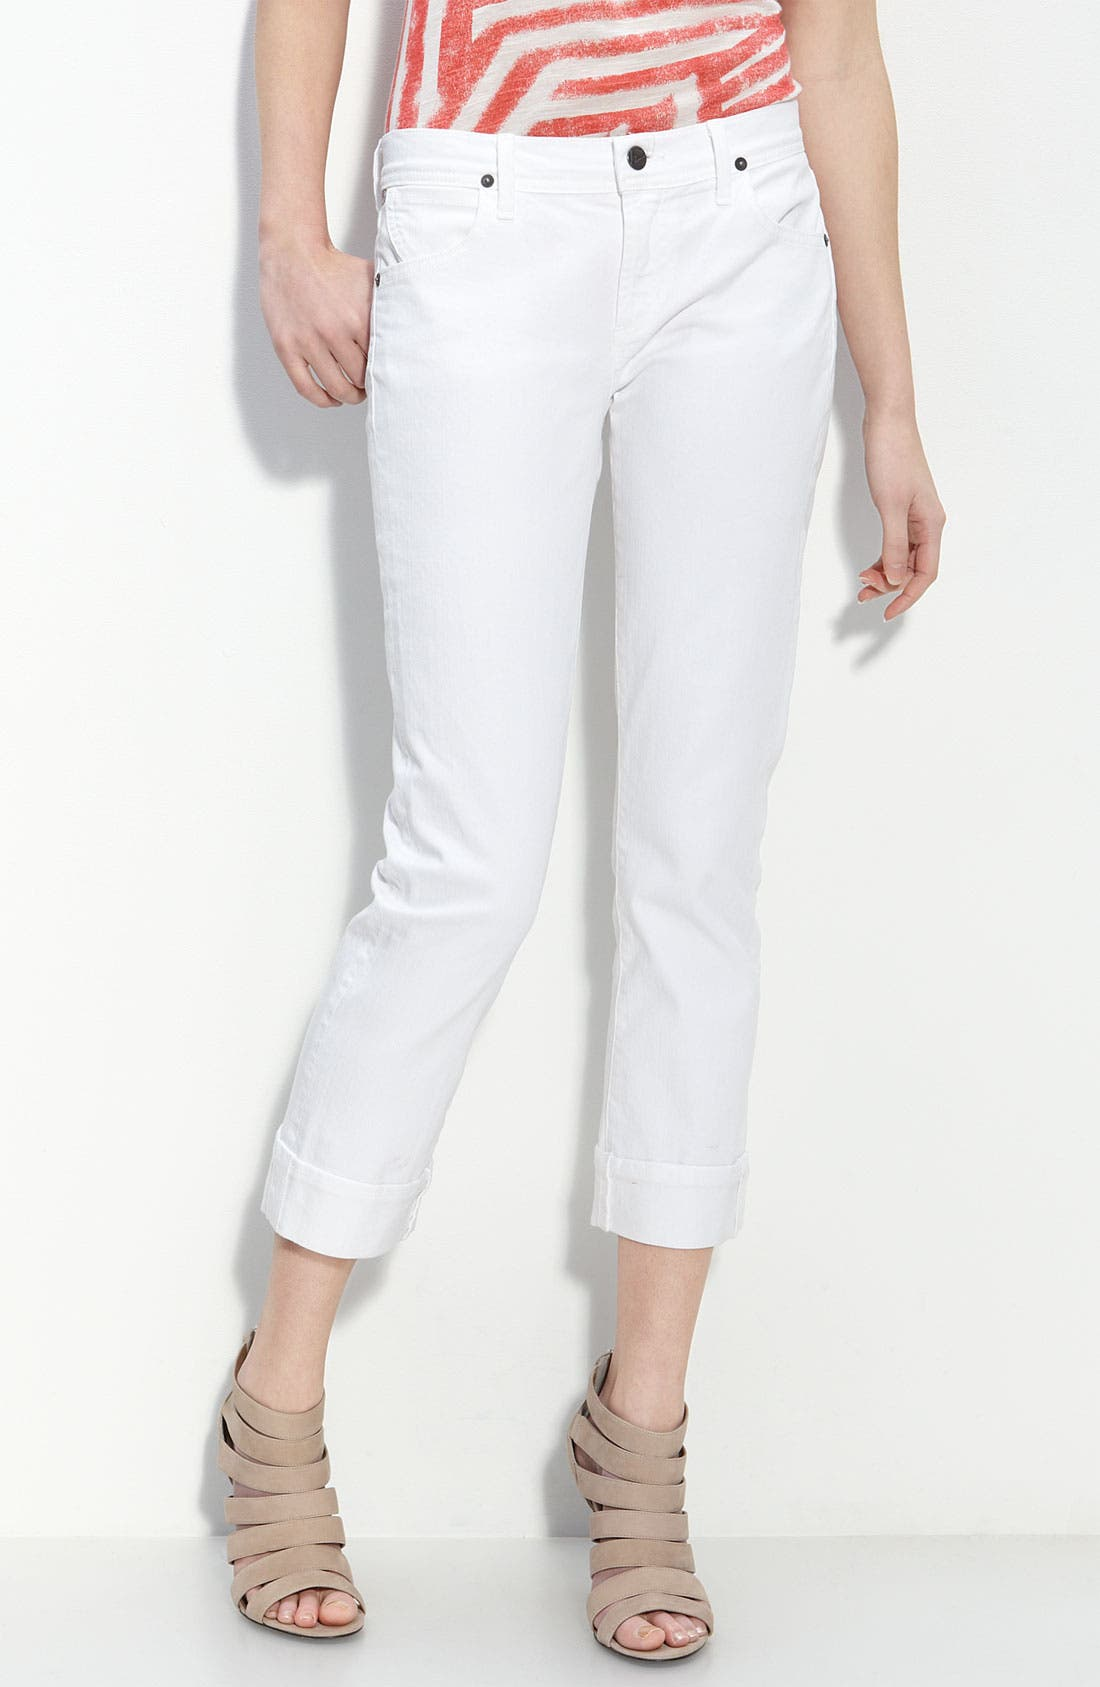 Alternate Image 1 Selected - Citizens of Humanity 'Dani' Stretch Denim Capri Pants (Santorini Wash)